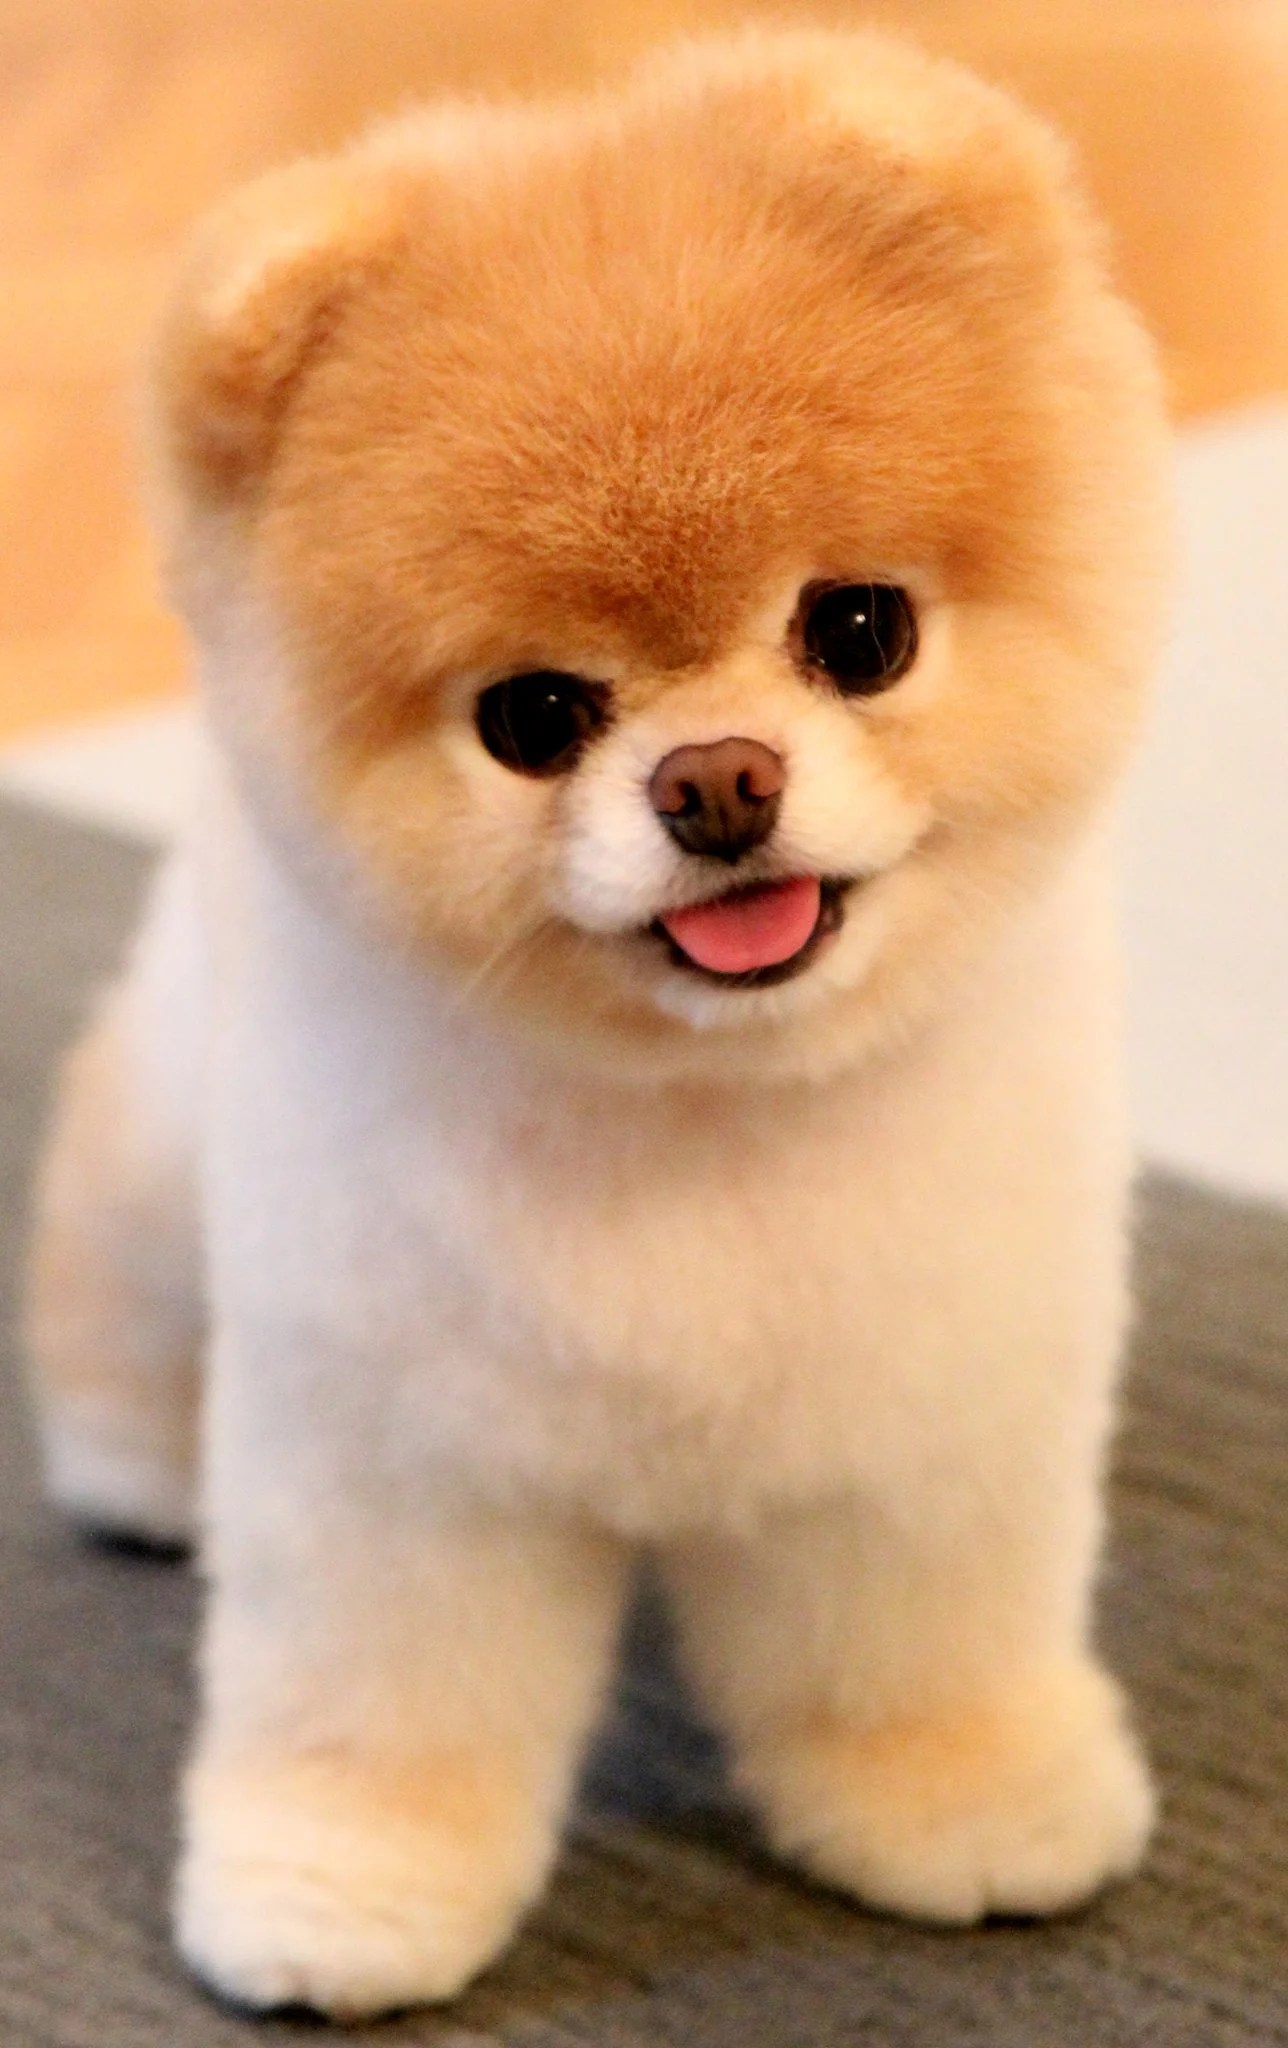 Snazzy Dogs That Look Like Stuffed Animals Rover Blog Why Are Dogs S So Why Are Dogs So Yahoo bark post Why Are Dogs So Cute